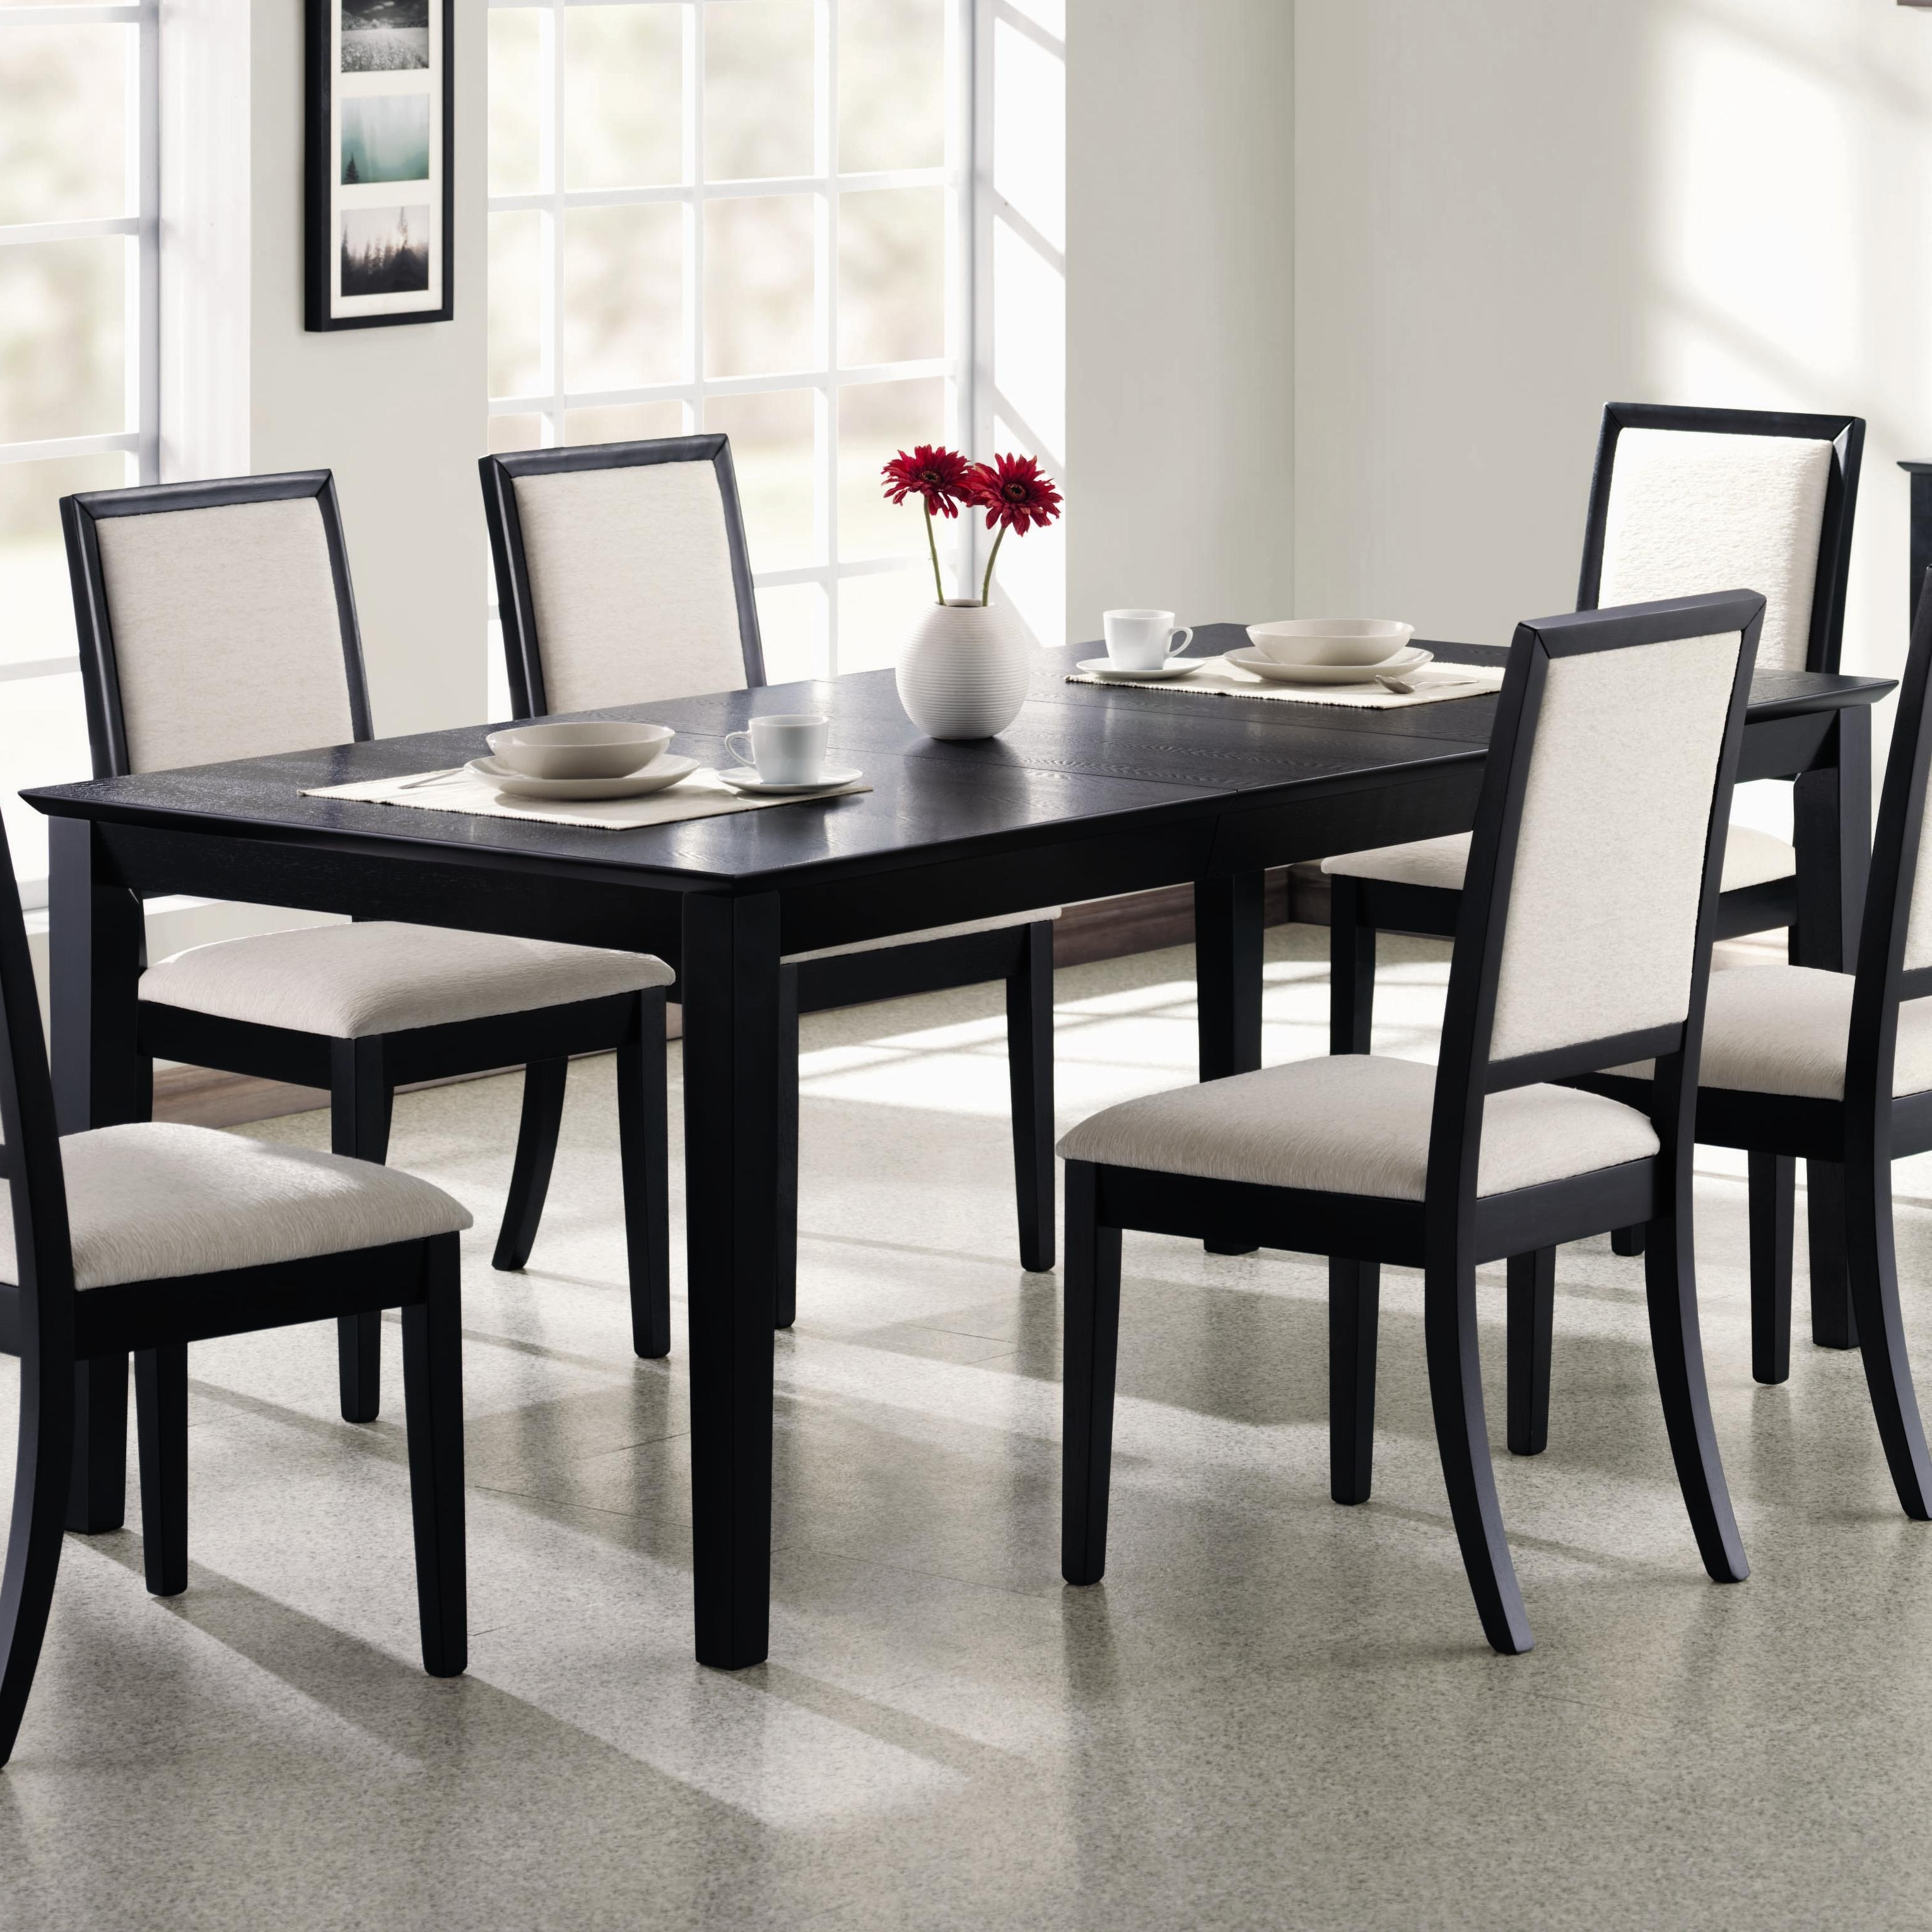 Dunk For Well Liked Rectangular Dining Tables Sets (View 4 of 25)